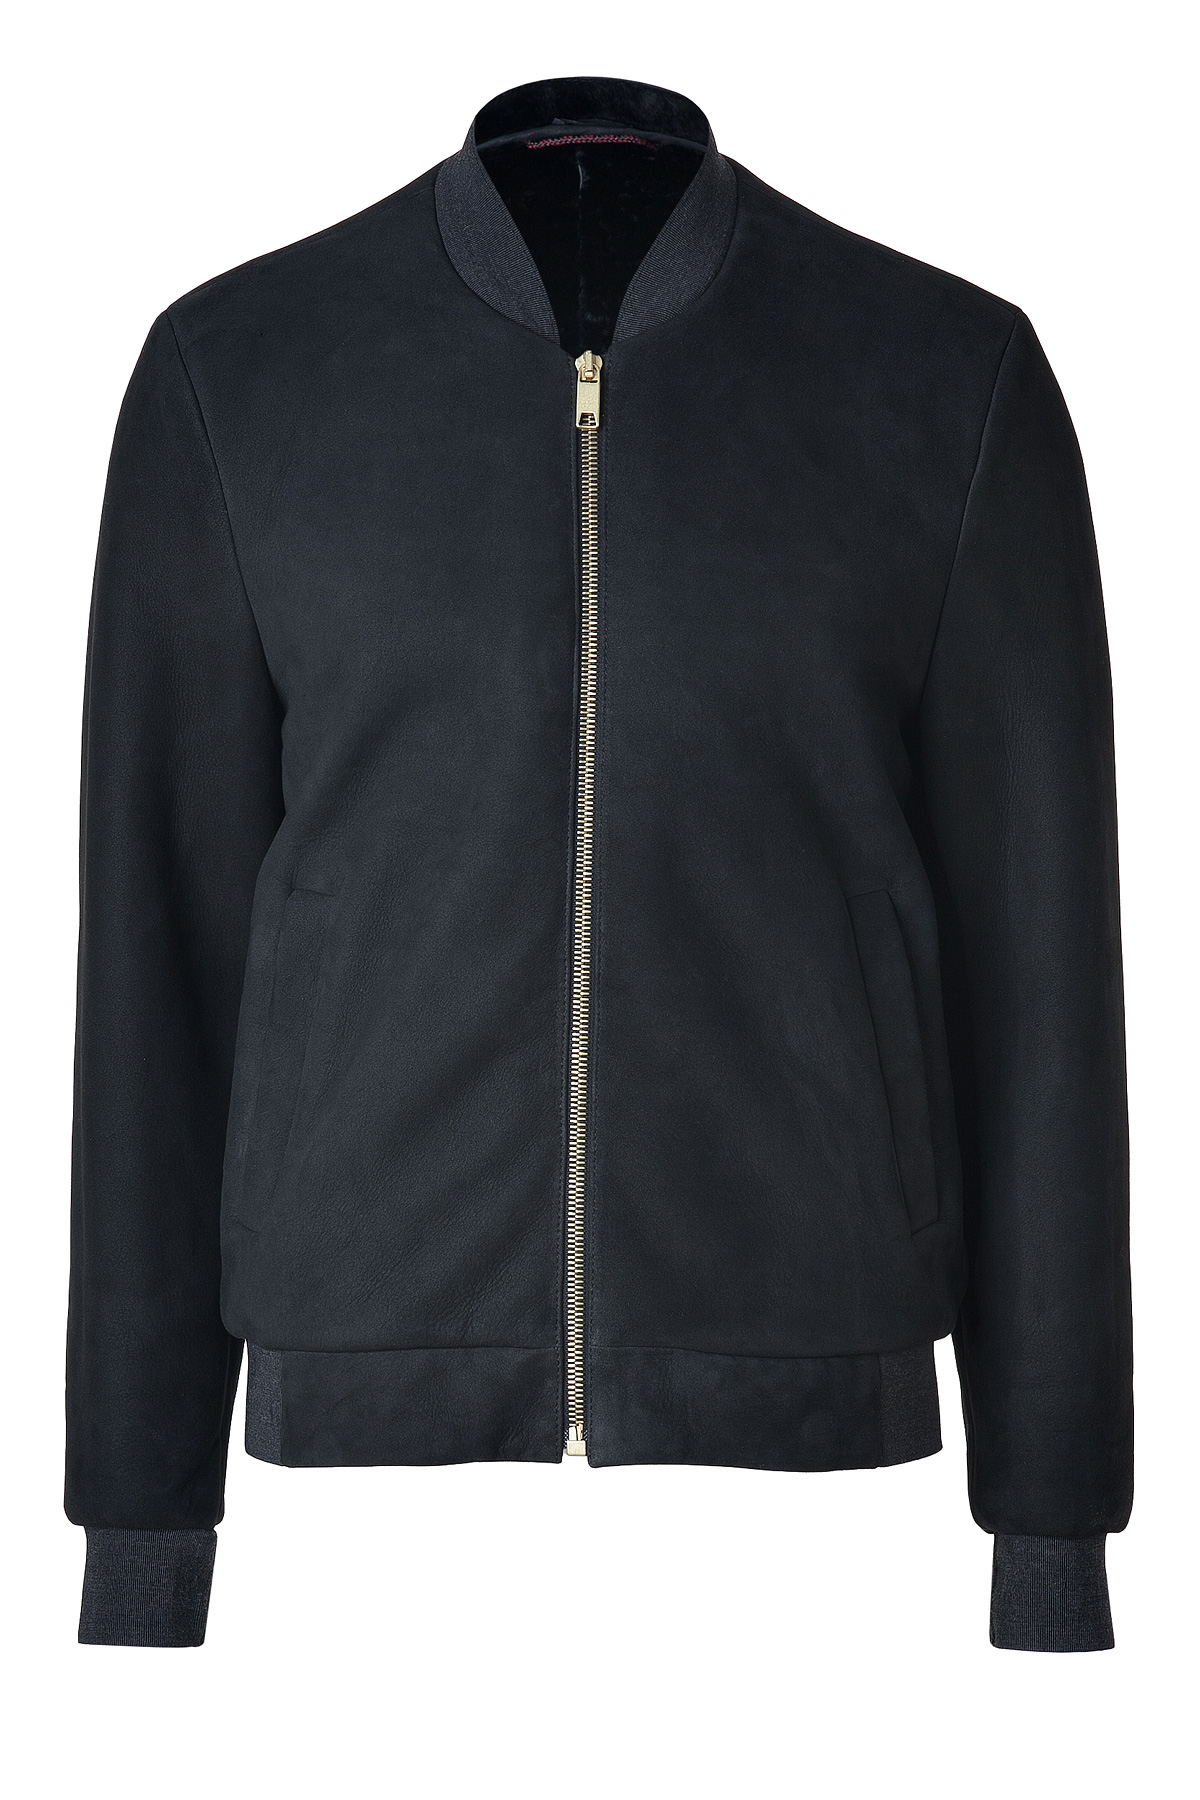 Marc Jacobs Black Shearlinglined Leather Baseball Jacket In Black For Men | Lyst